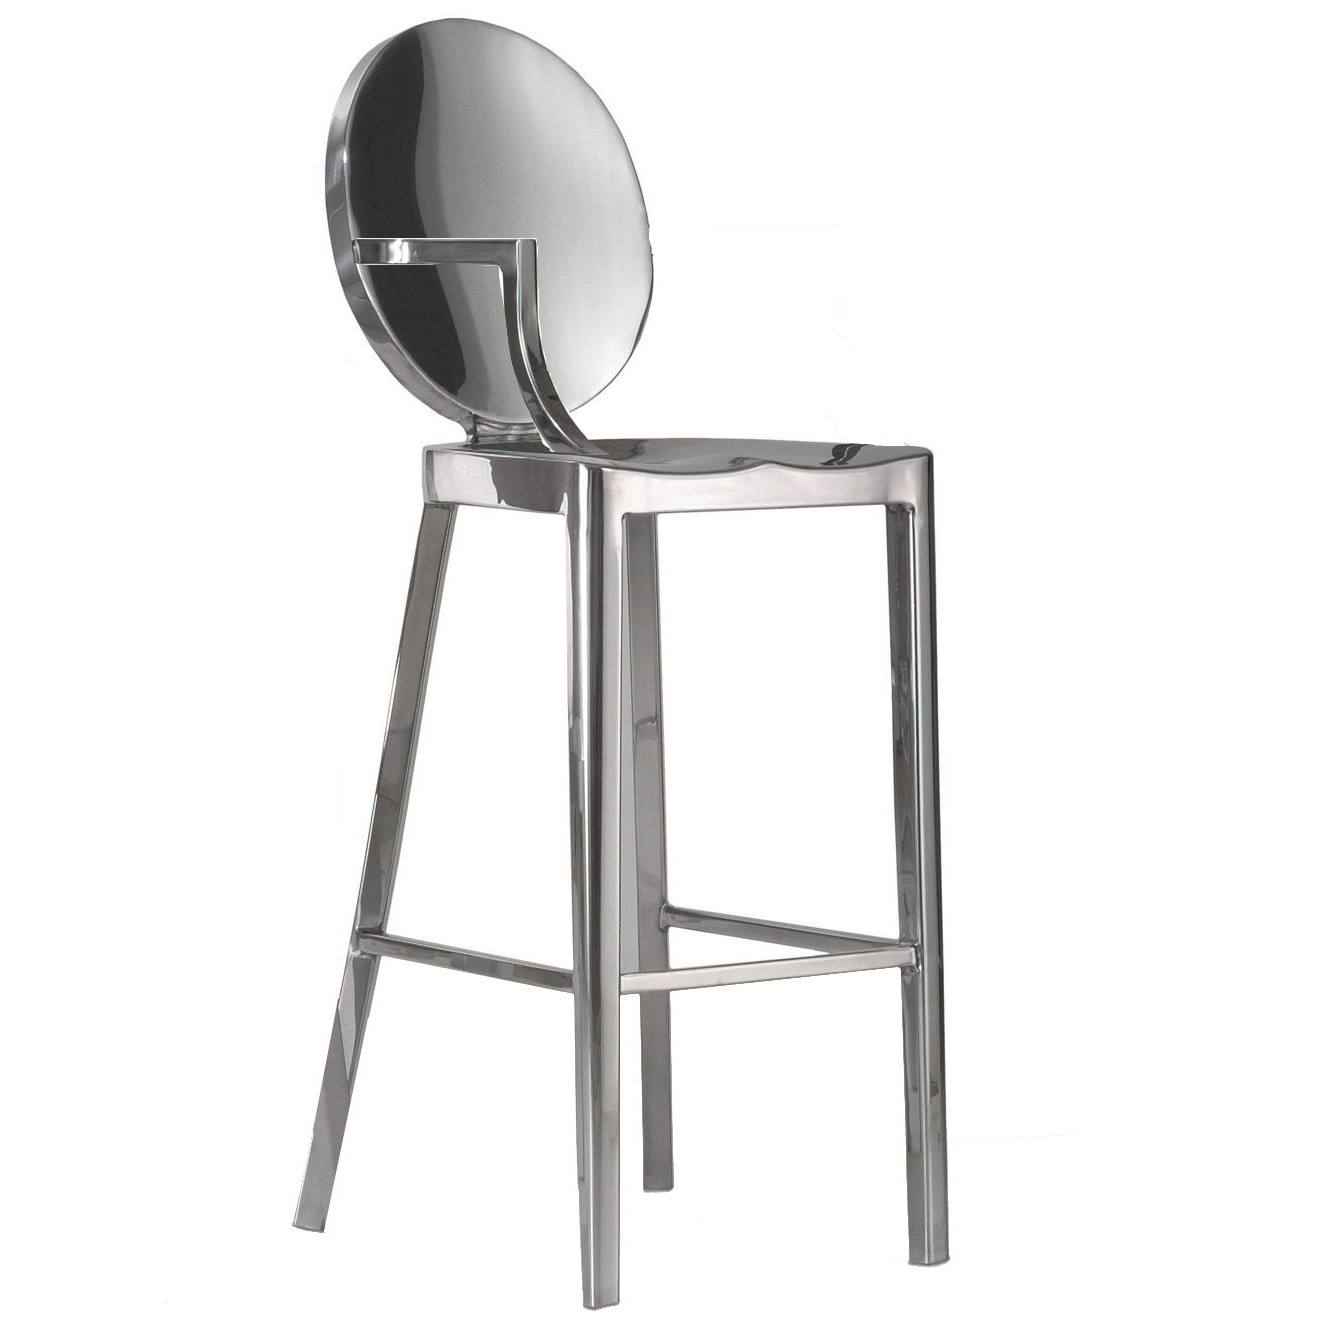 Kong Counter Stool Emeco Philippe Starck Owo Online